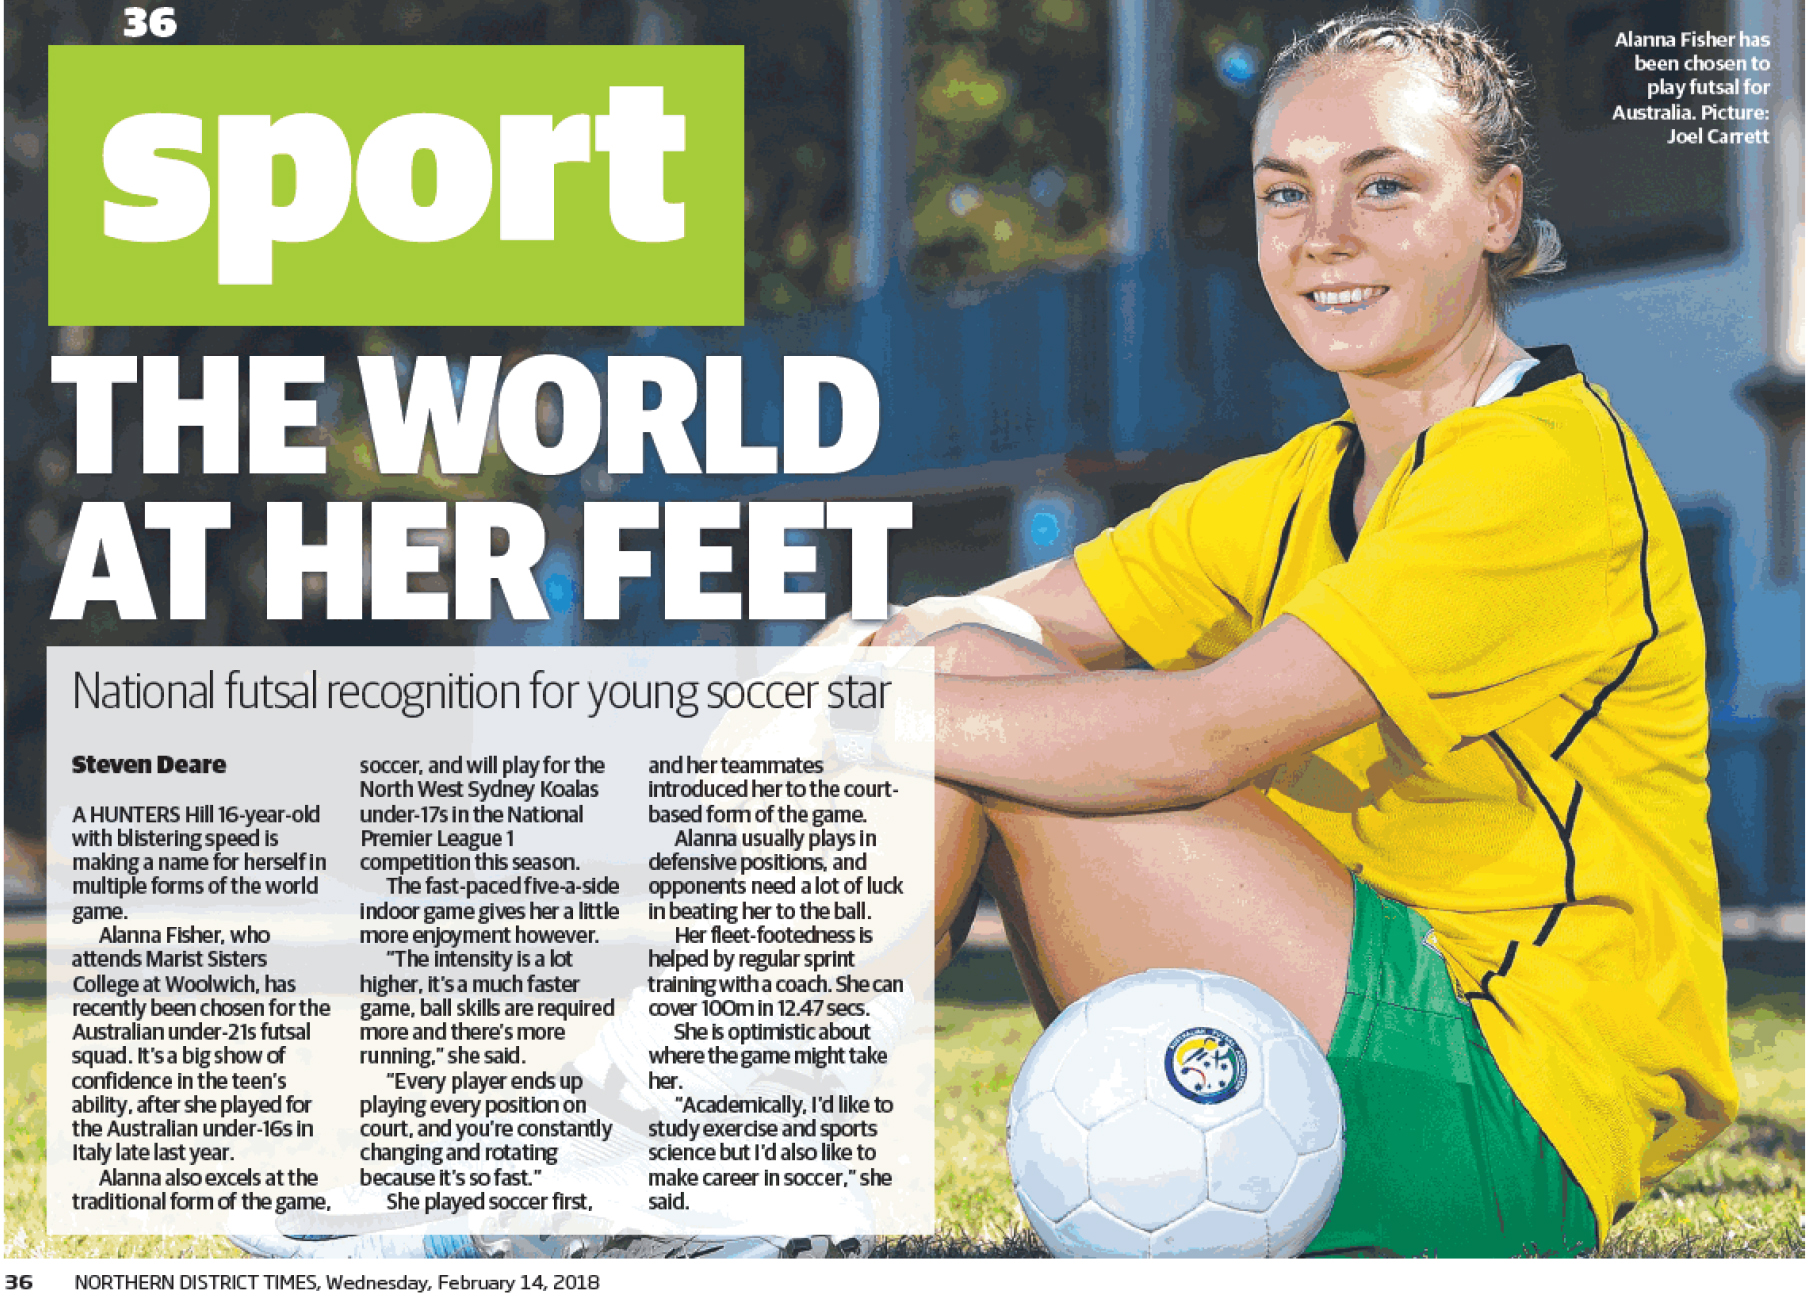 """The Northern District Times"" 14 Feb 2018 article re Alanna Fisher"